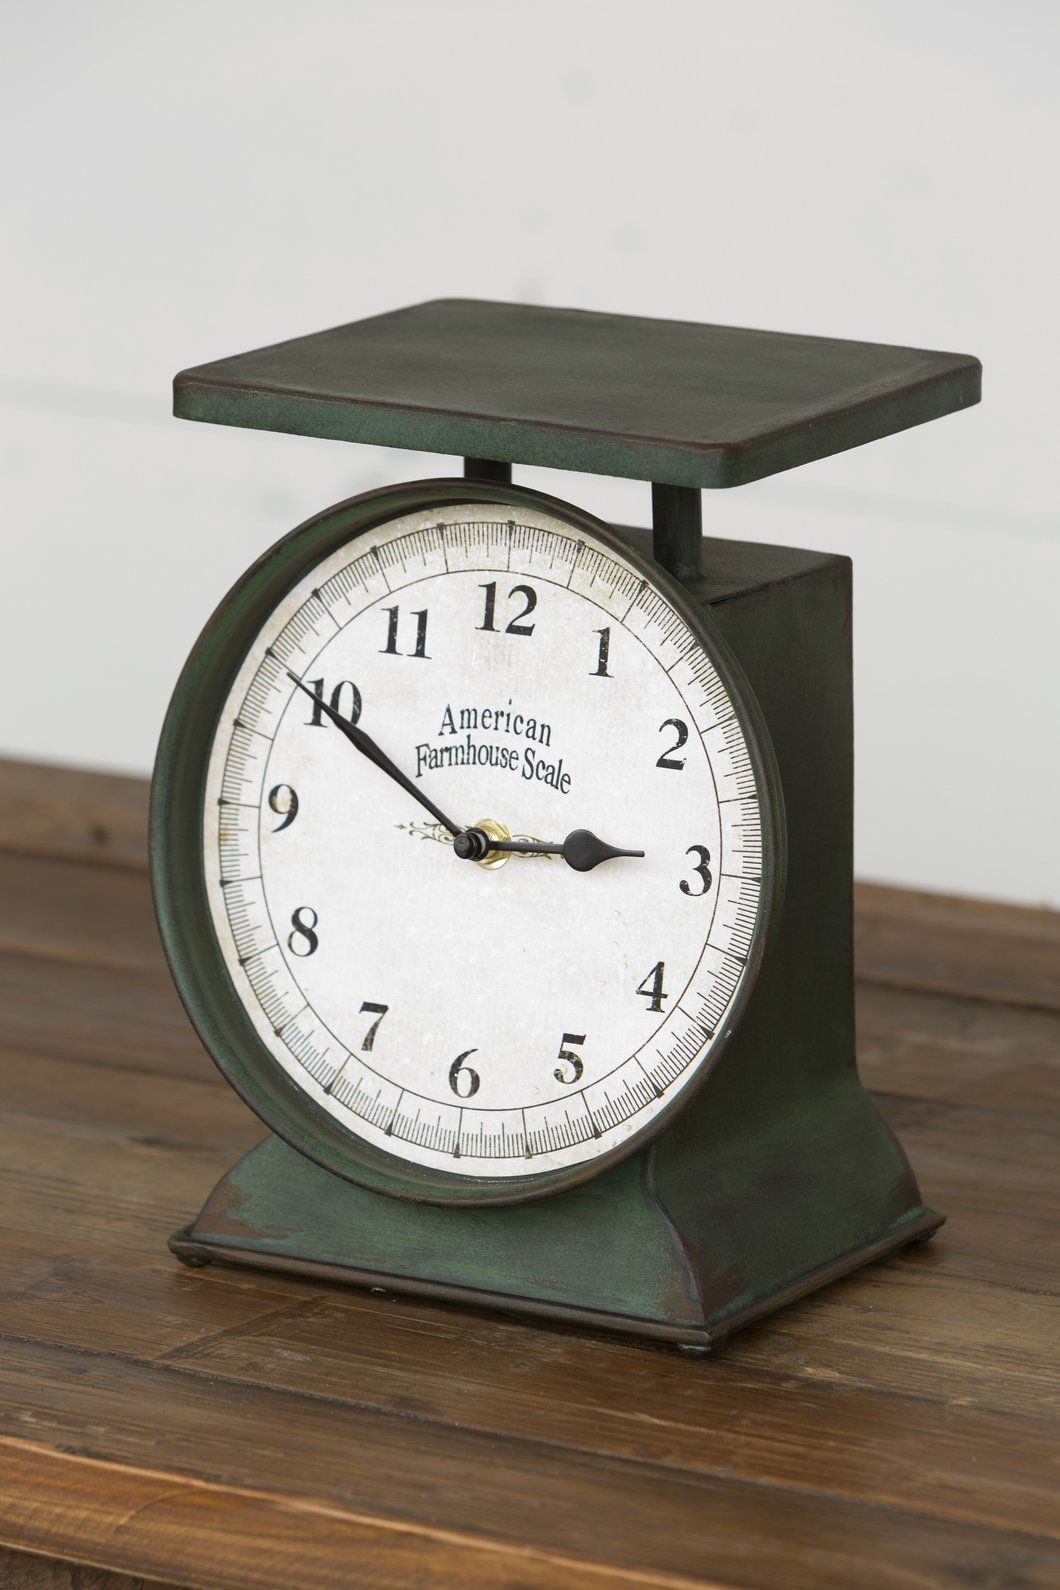 Vintage Inspired Farmhouse Scale Clock | Scale, Clocks and Vintage